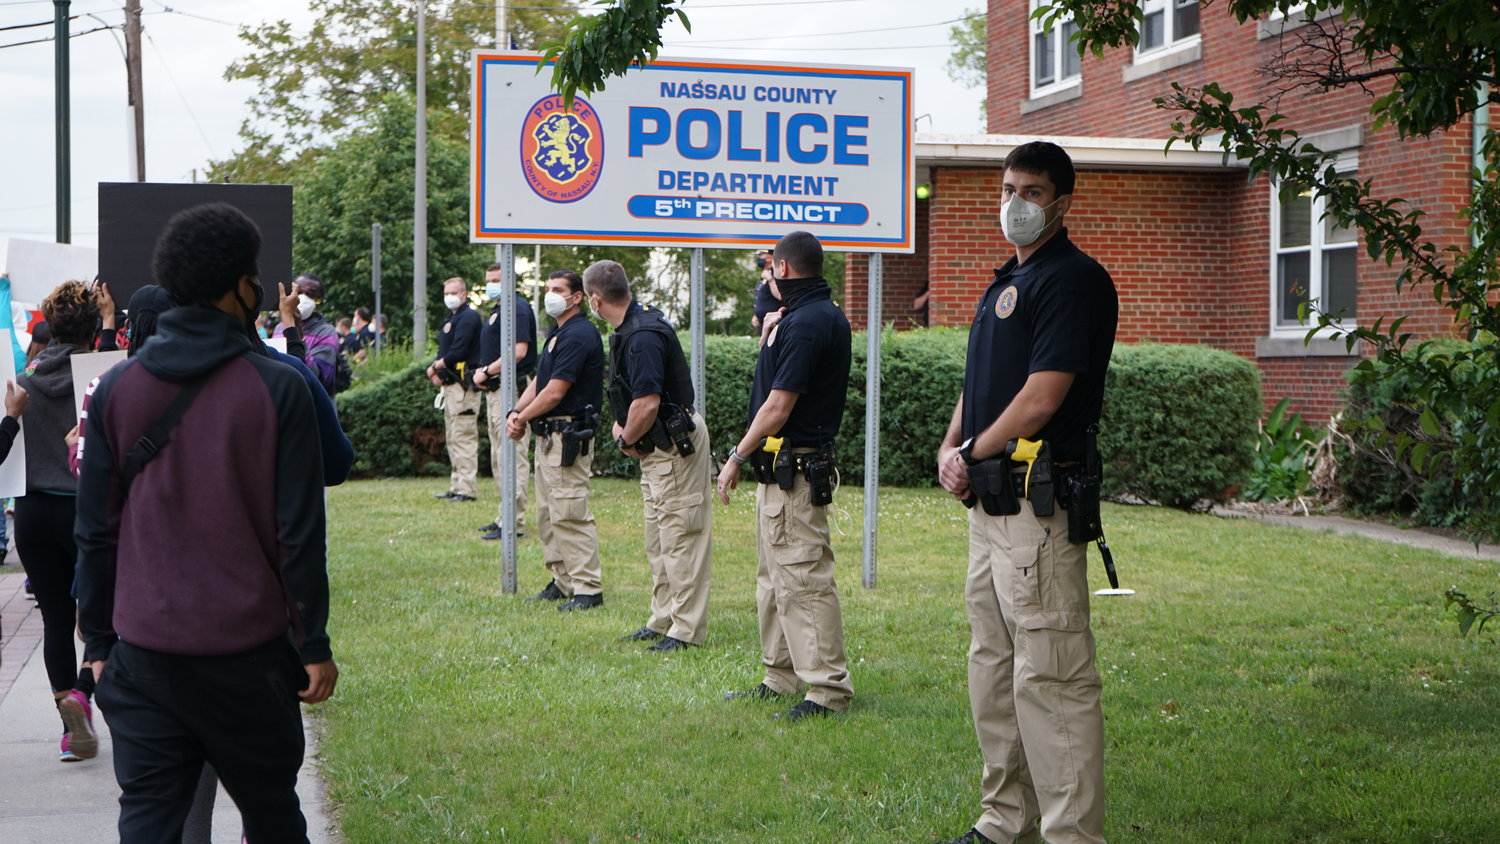 Nassau County officers stood guard as the protest passed the 5th Precinct.